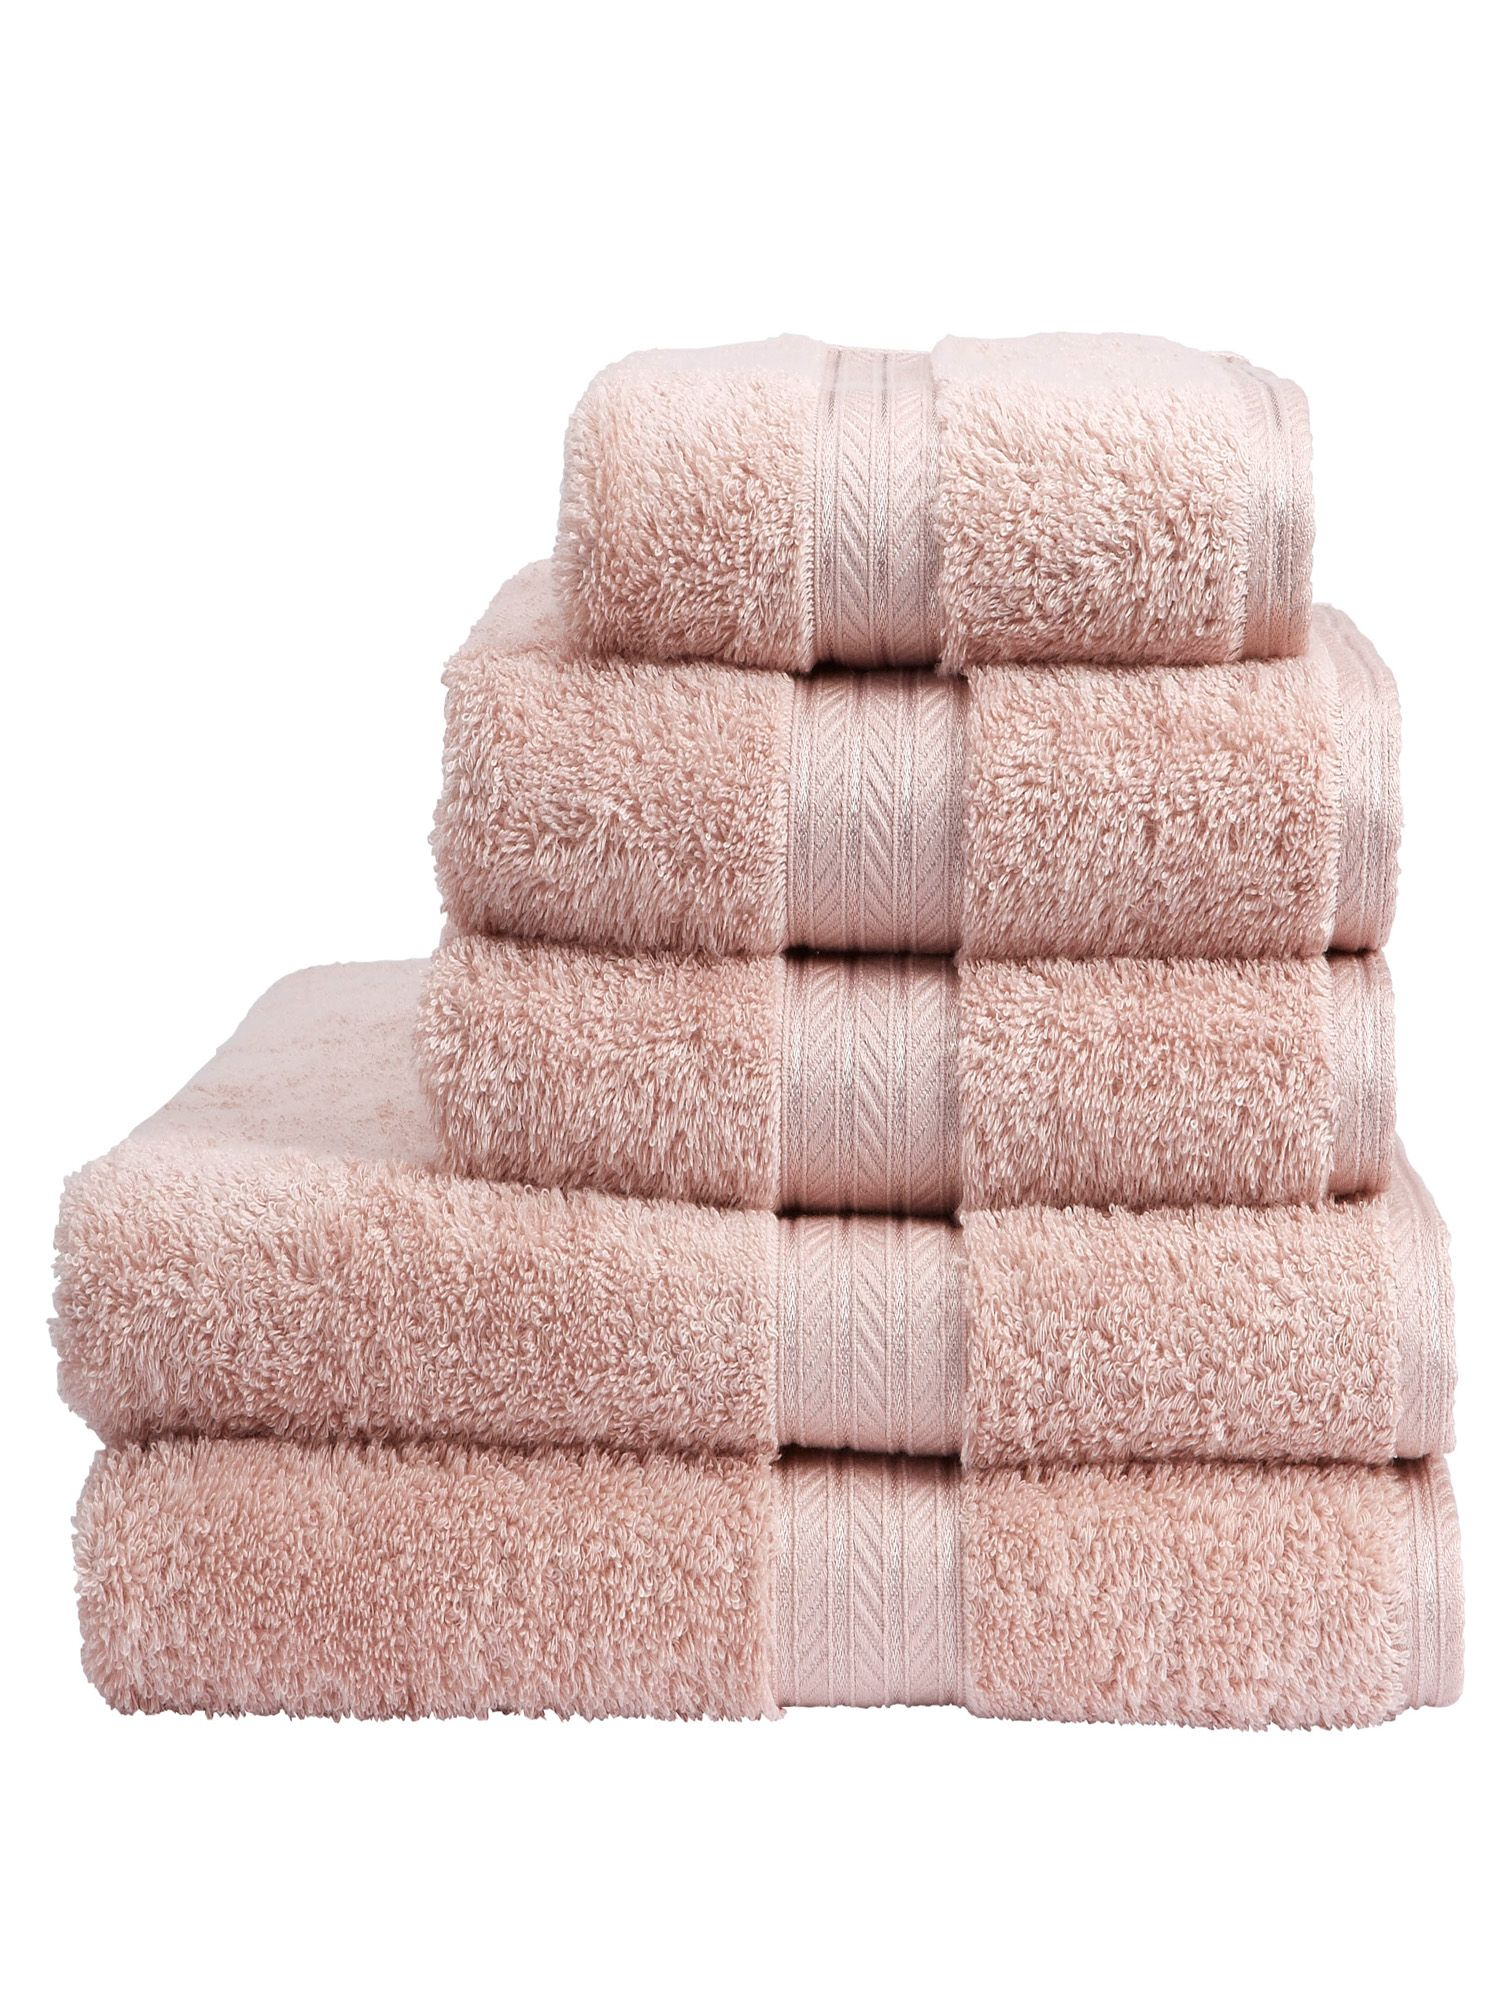 Renaissance III towels in pale rose